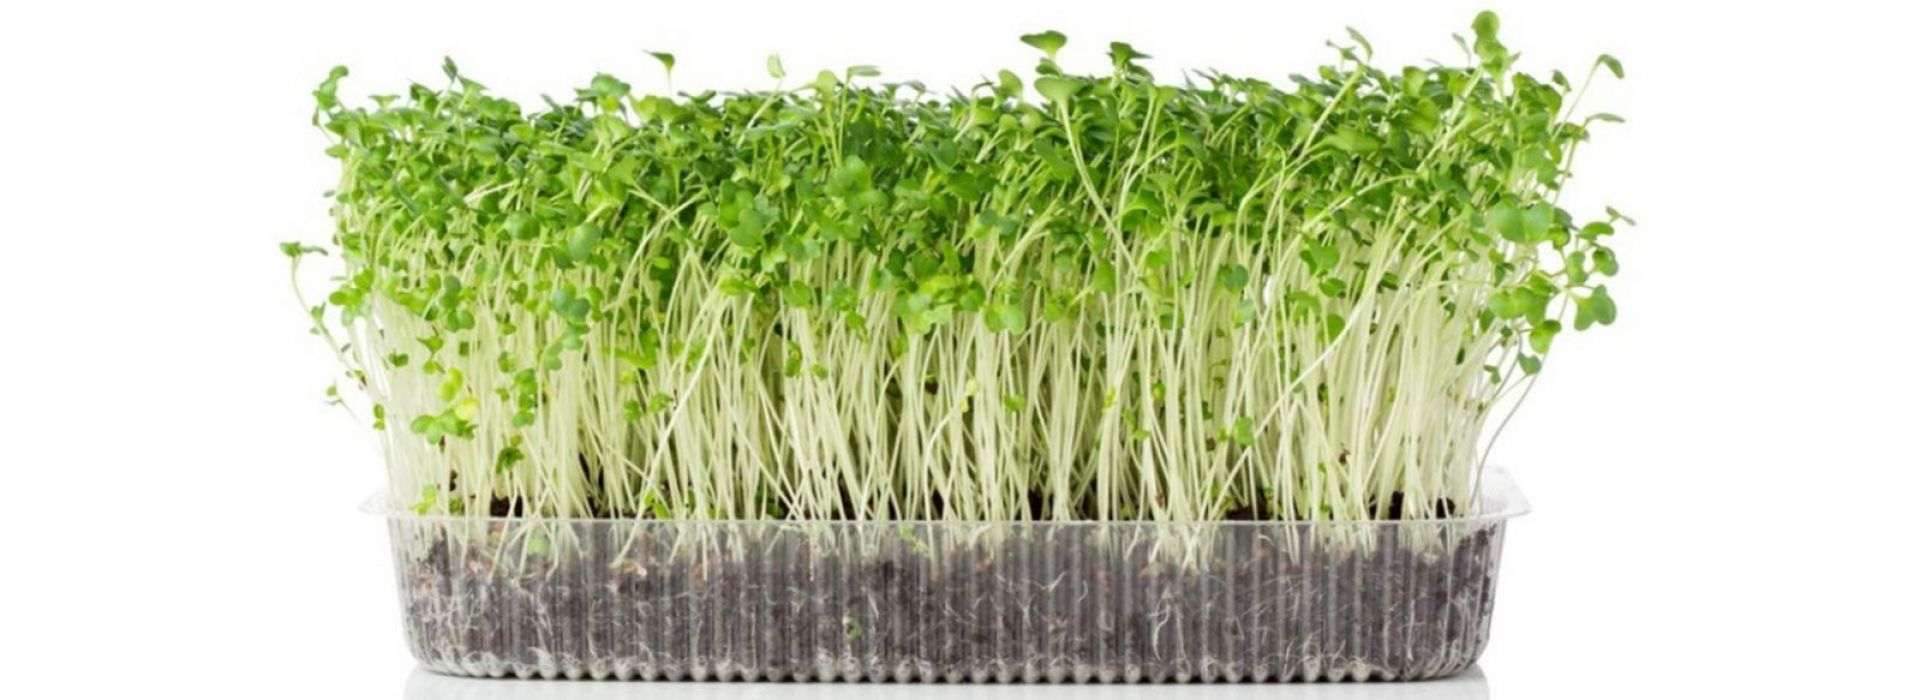 Wheat Grass Cress